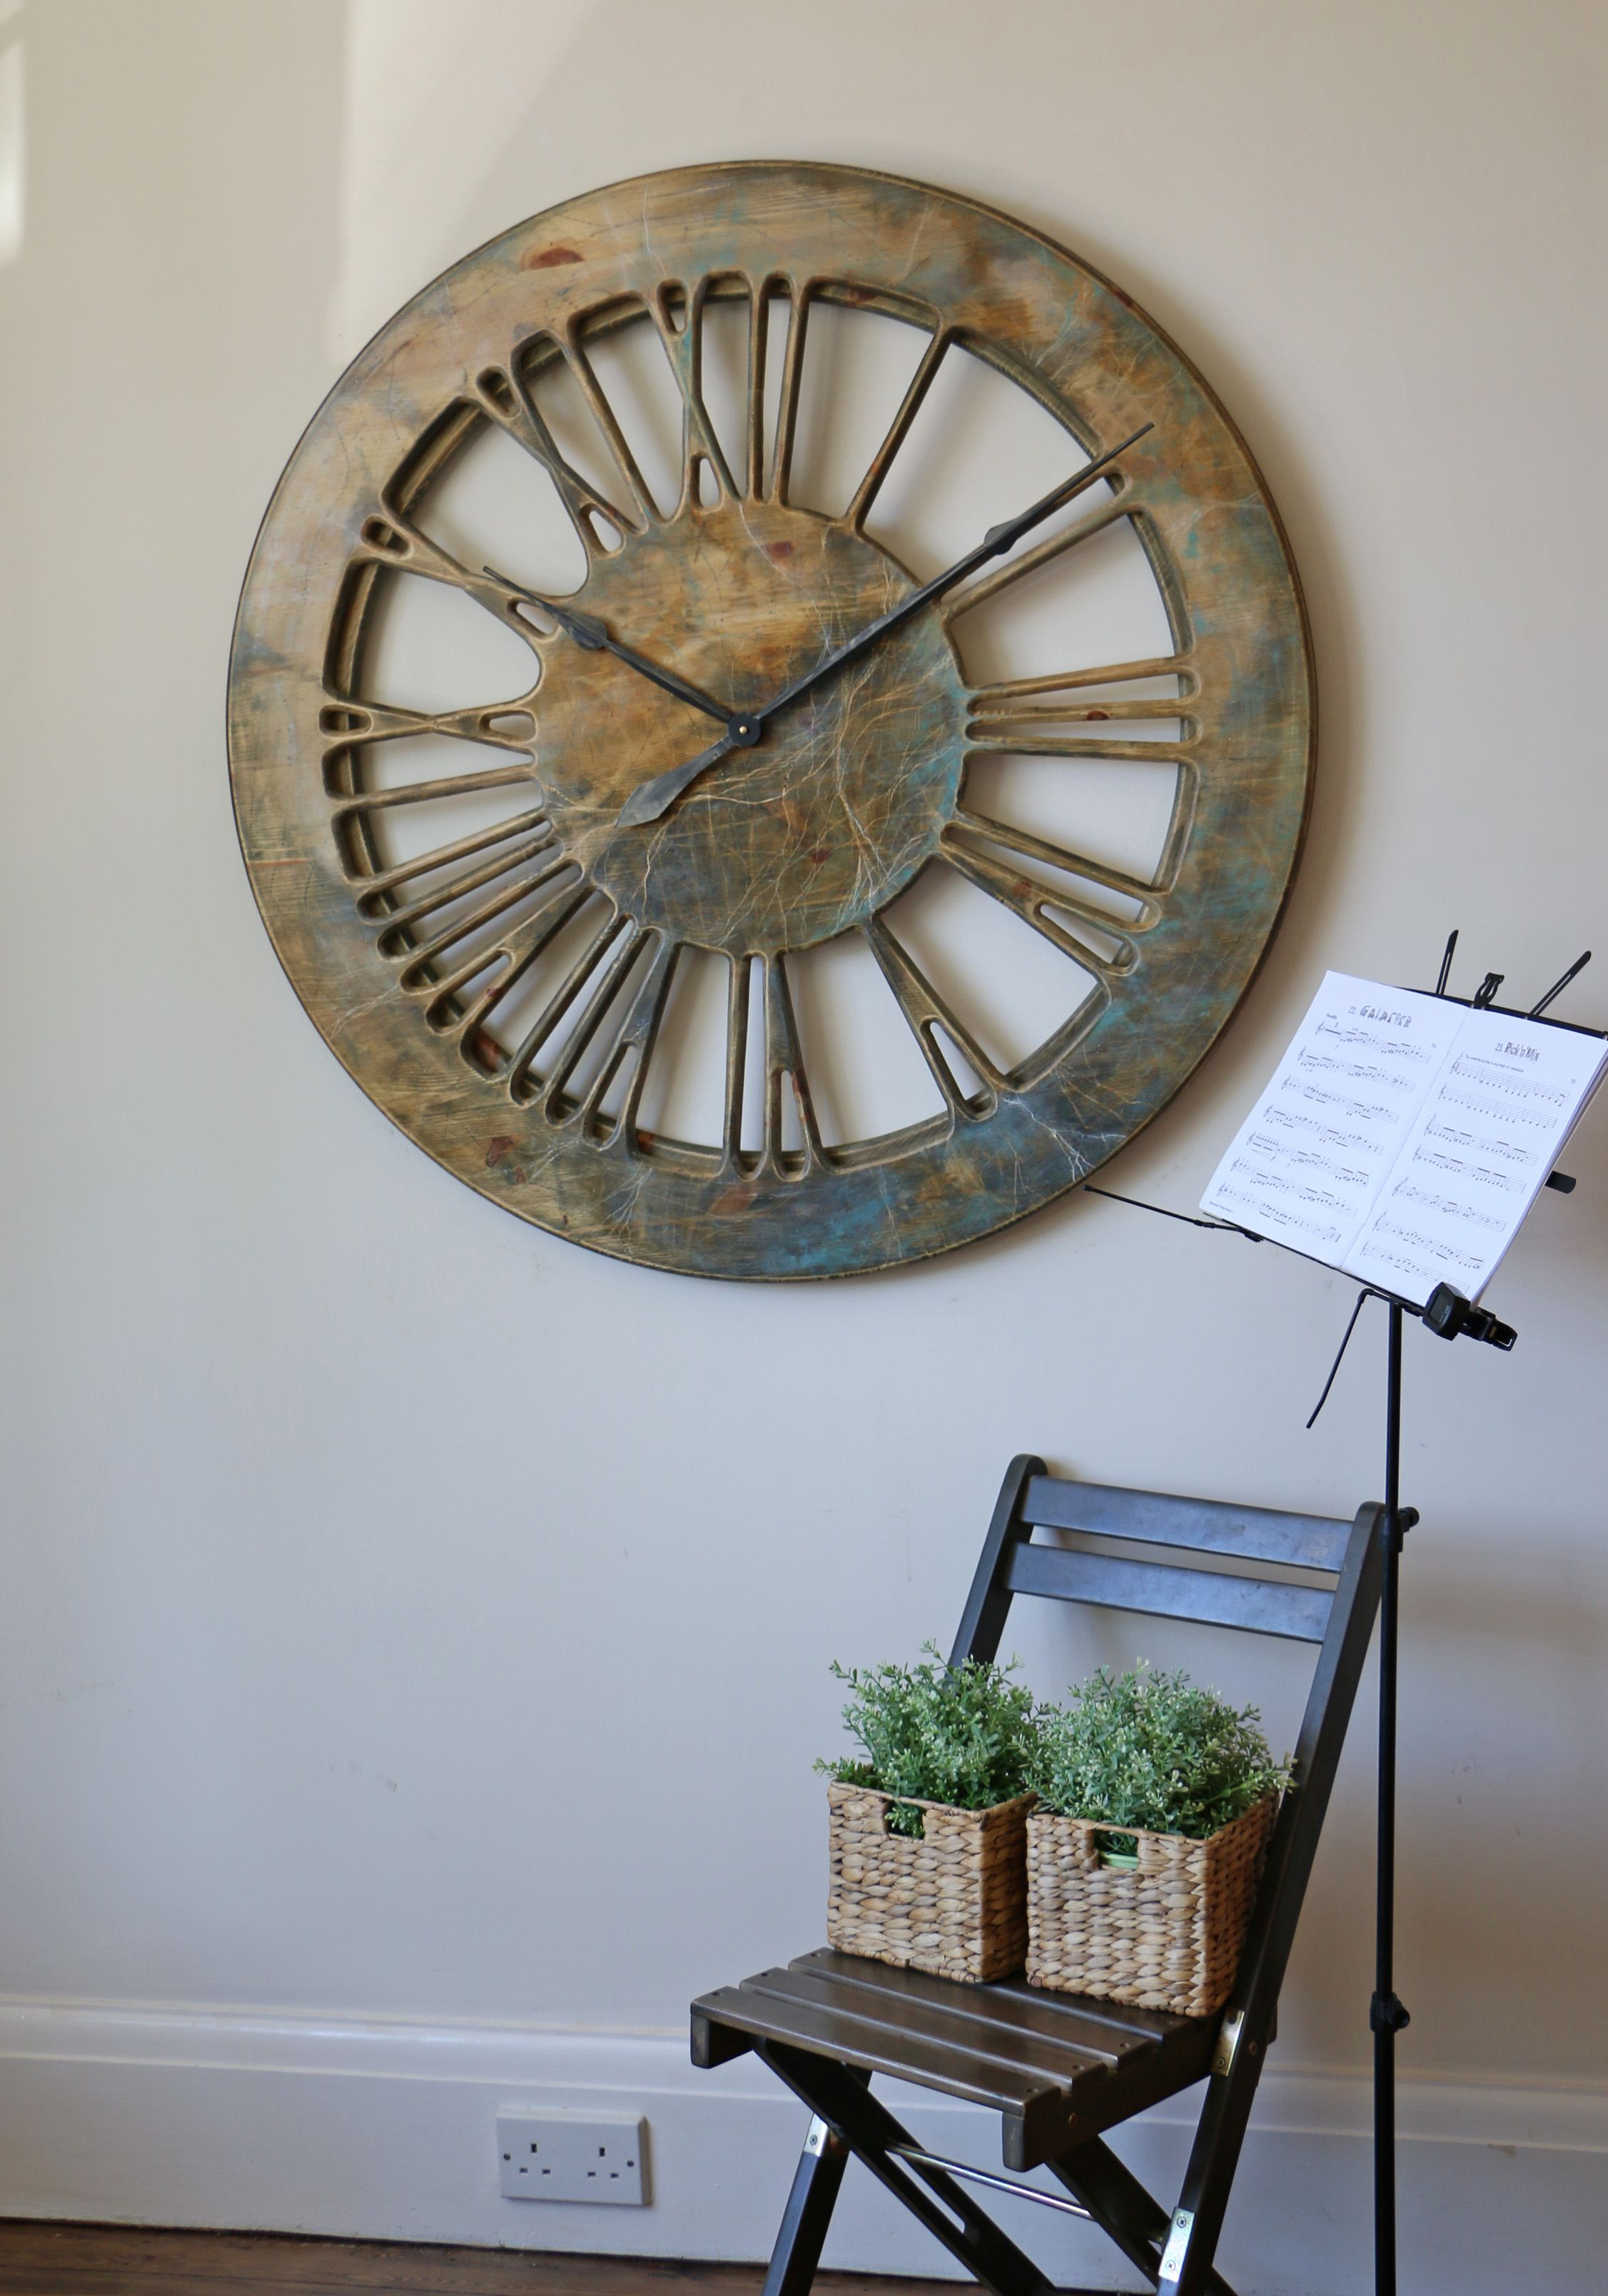 Contemporary Wall Clock With Large Hand Carved Roman Numerals Unique Wall Clocks Decor Paint For Kitchen Walls